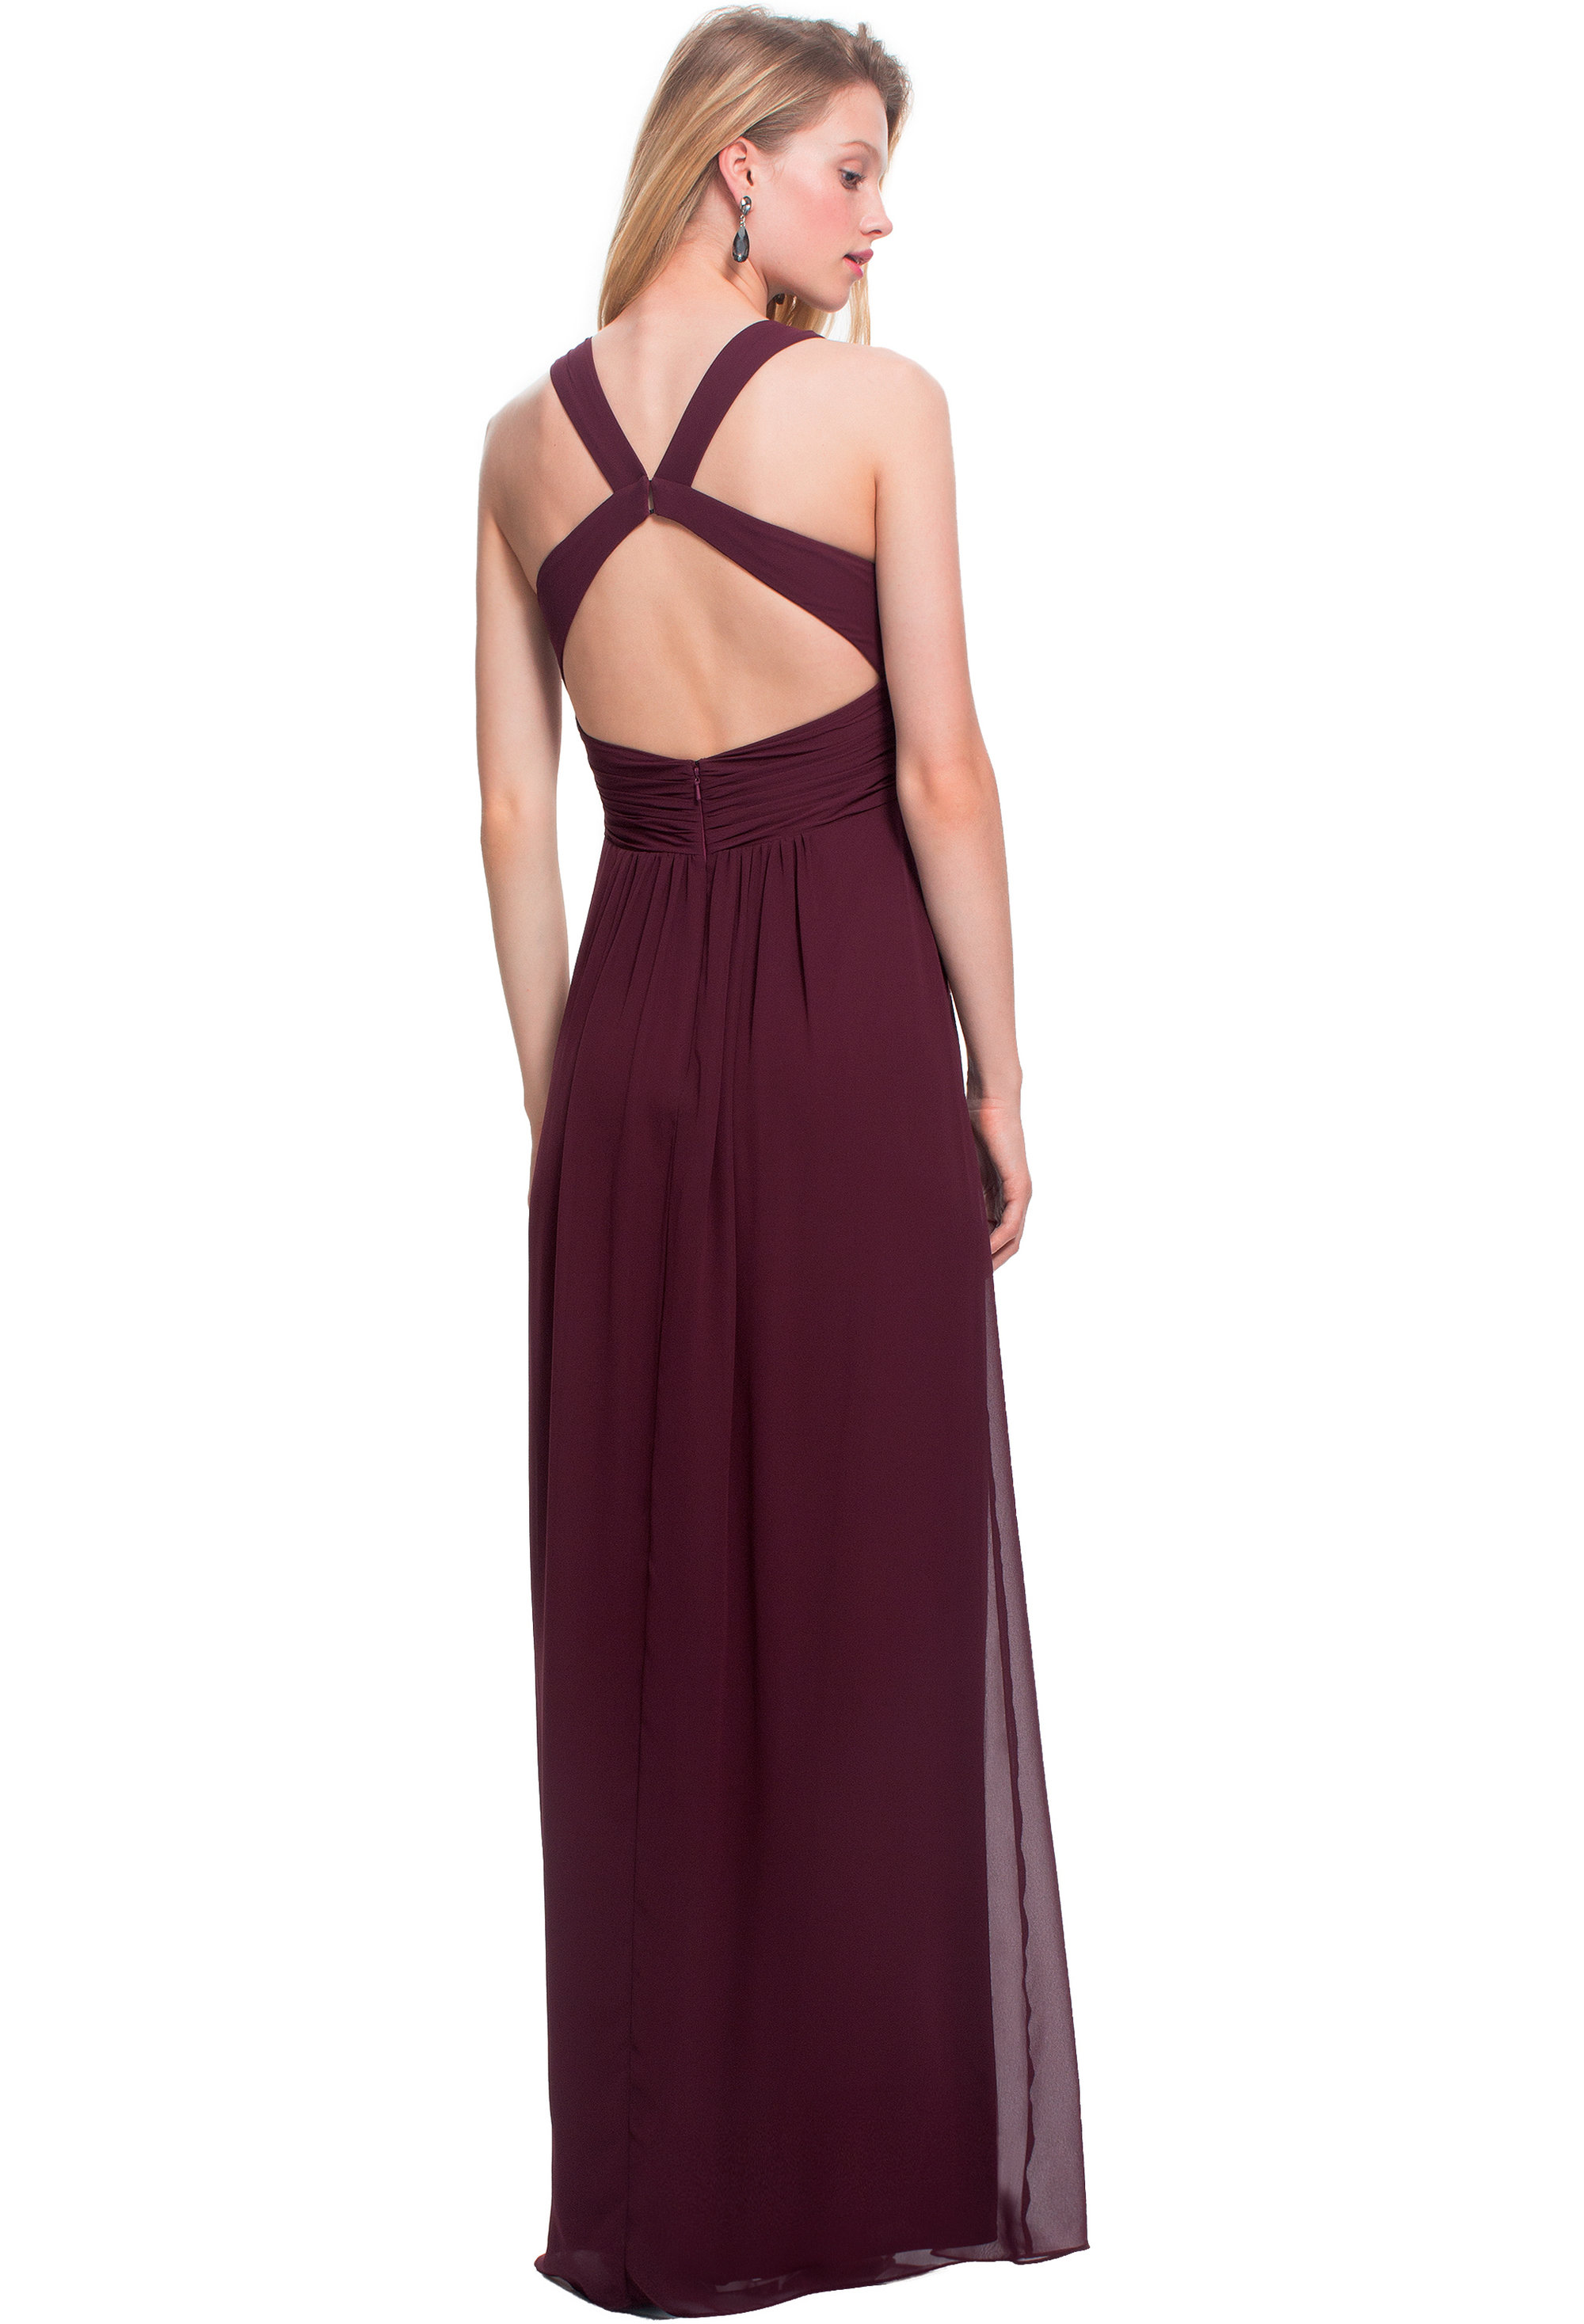 Bill Levkoff REGENCY Chiffon Sleeveless A-line gown, $178.00 Back